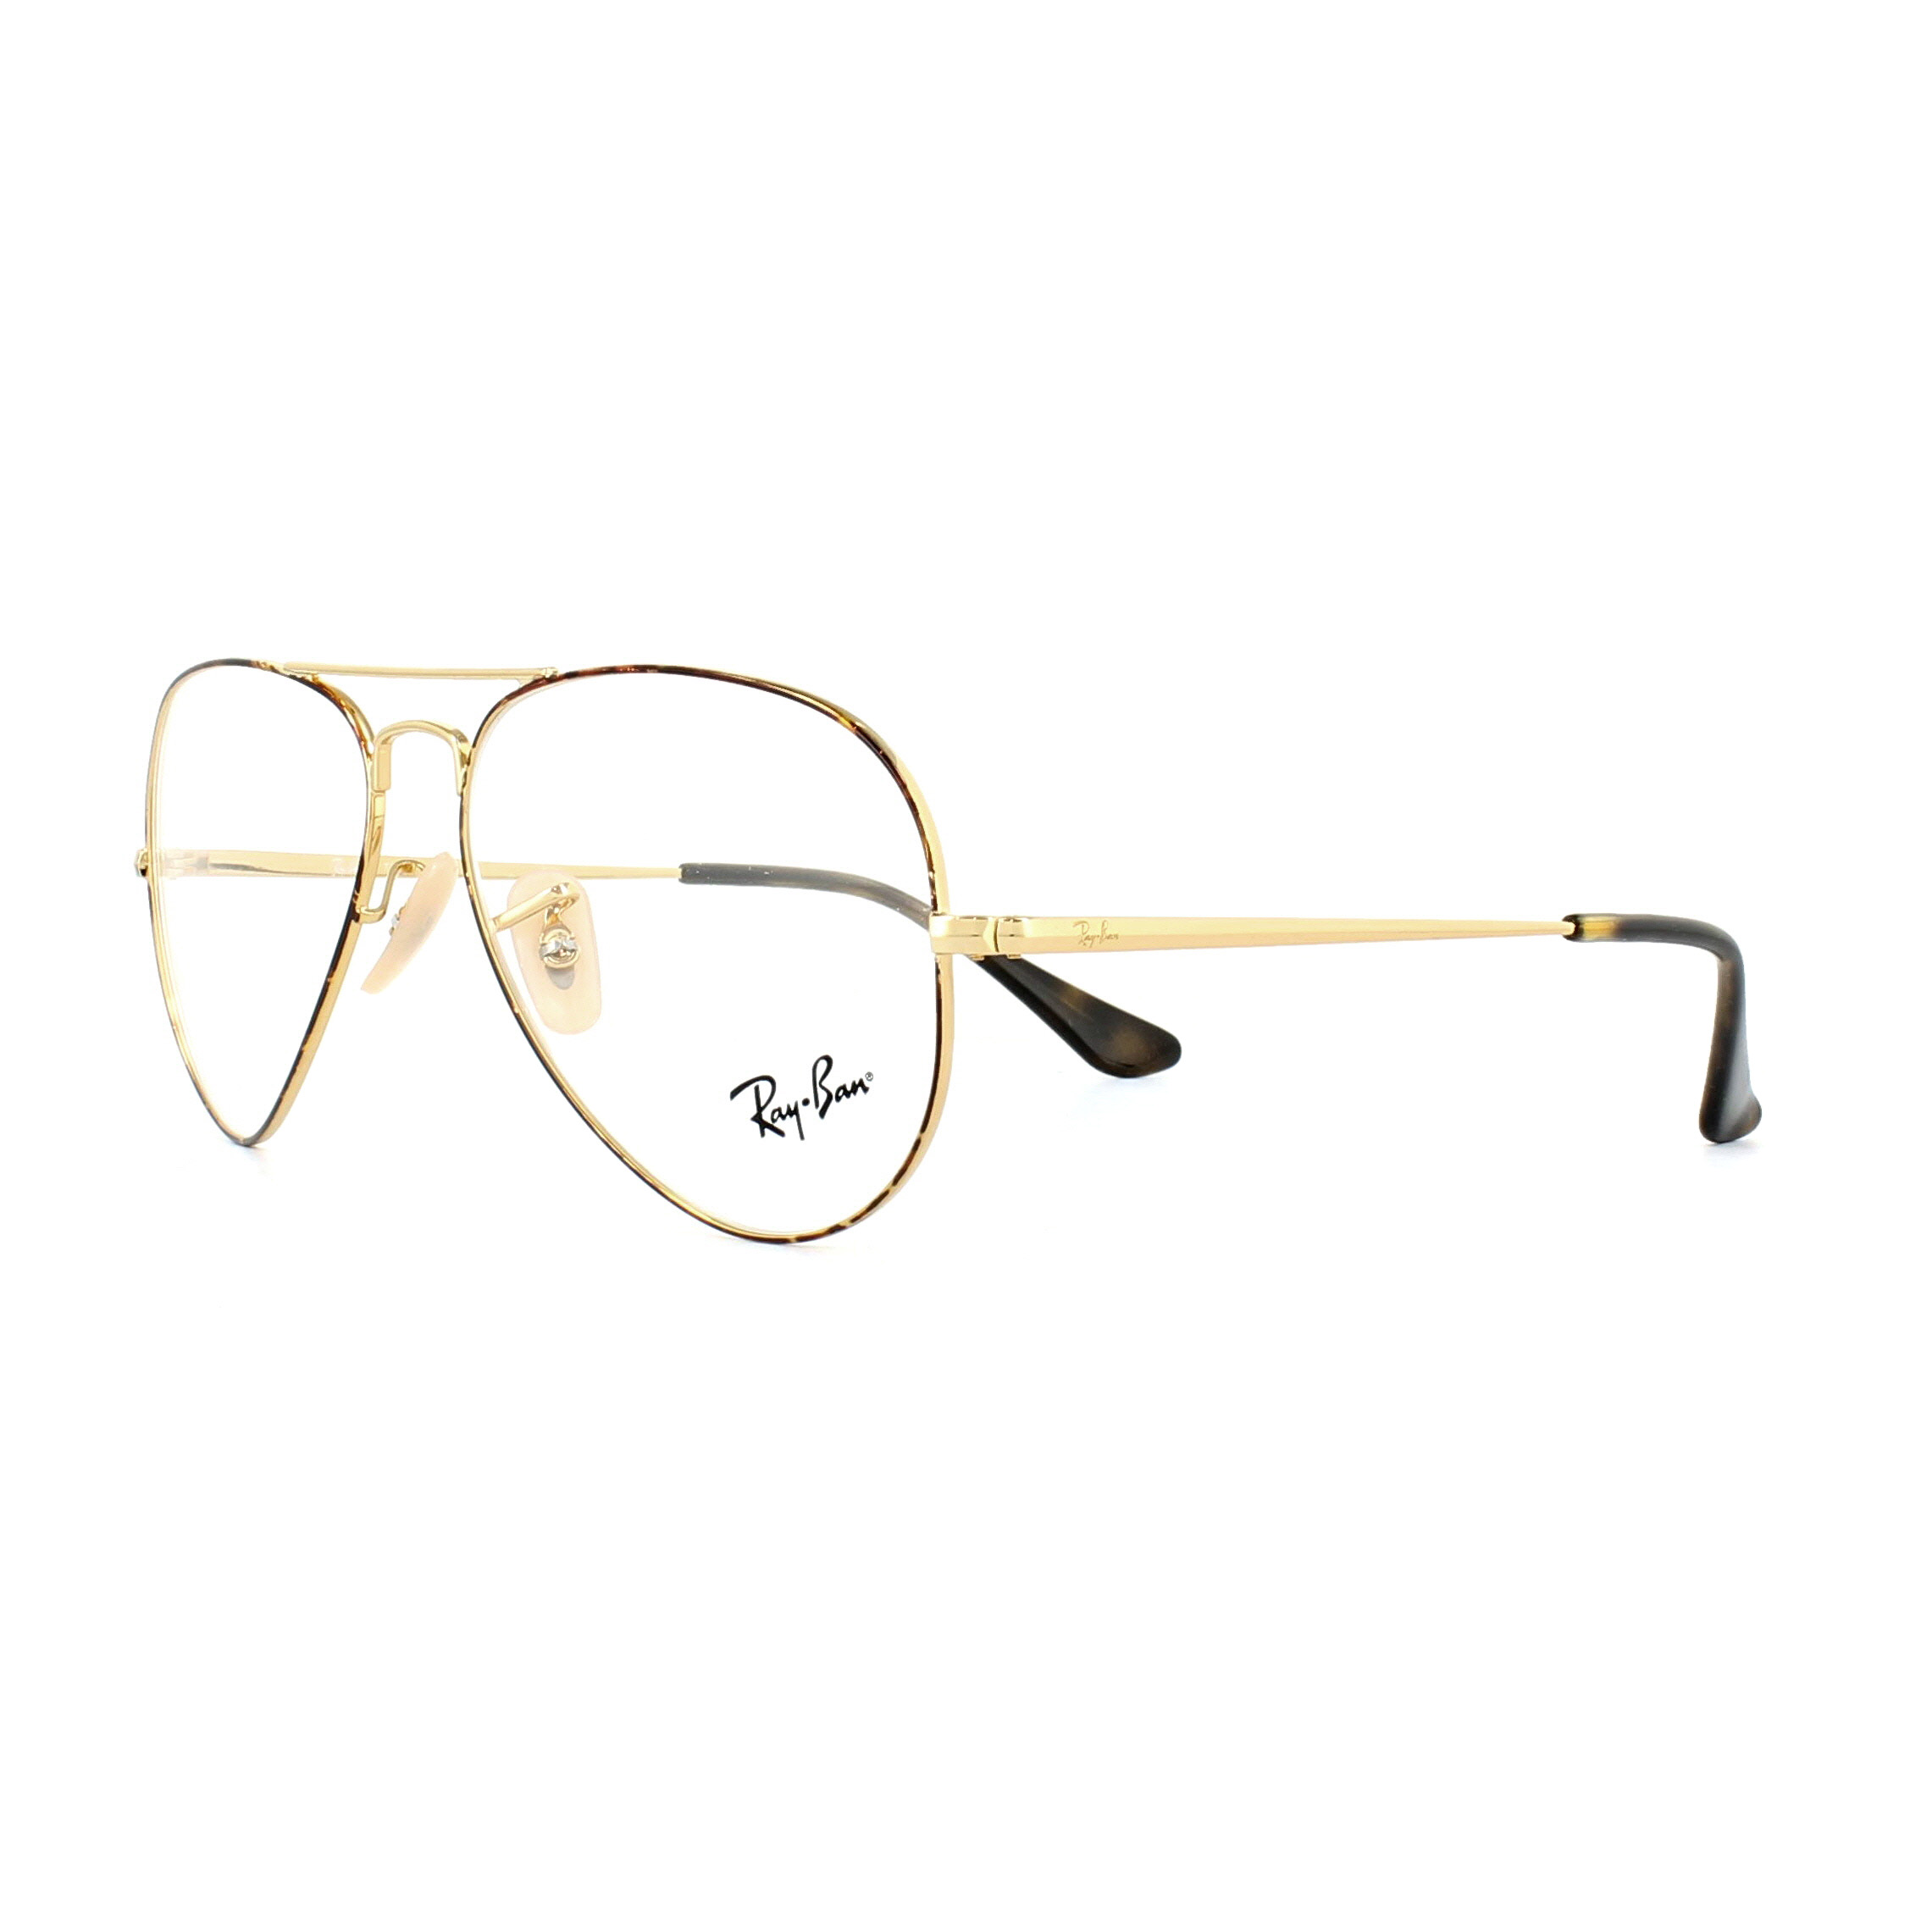 148040e9604a2 Sentinel Ray-Ban Glasses Frames 6489 Aviator 2945 Gold Top on Havana 58mm  Mens